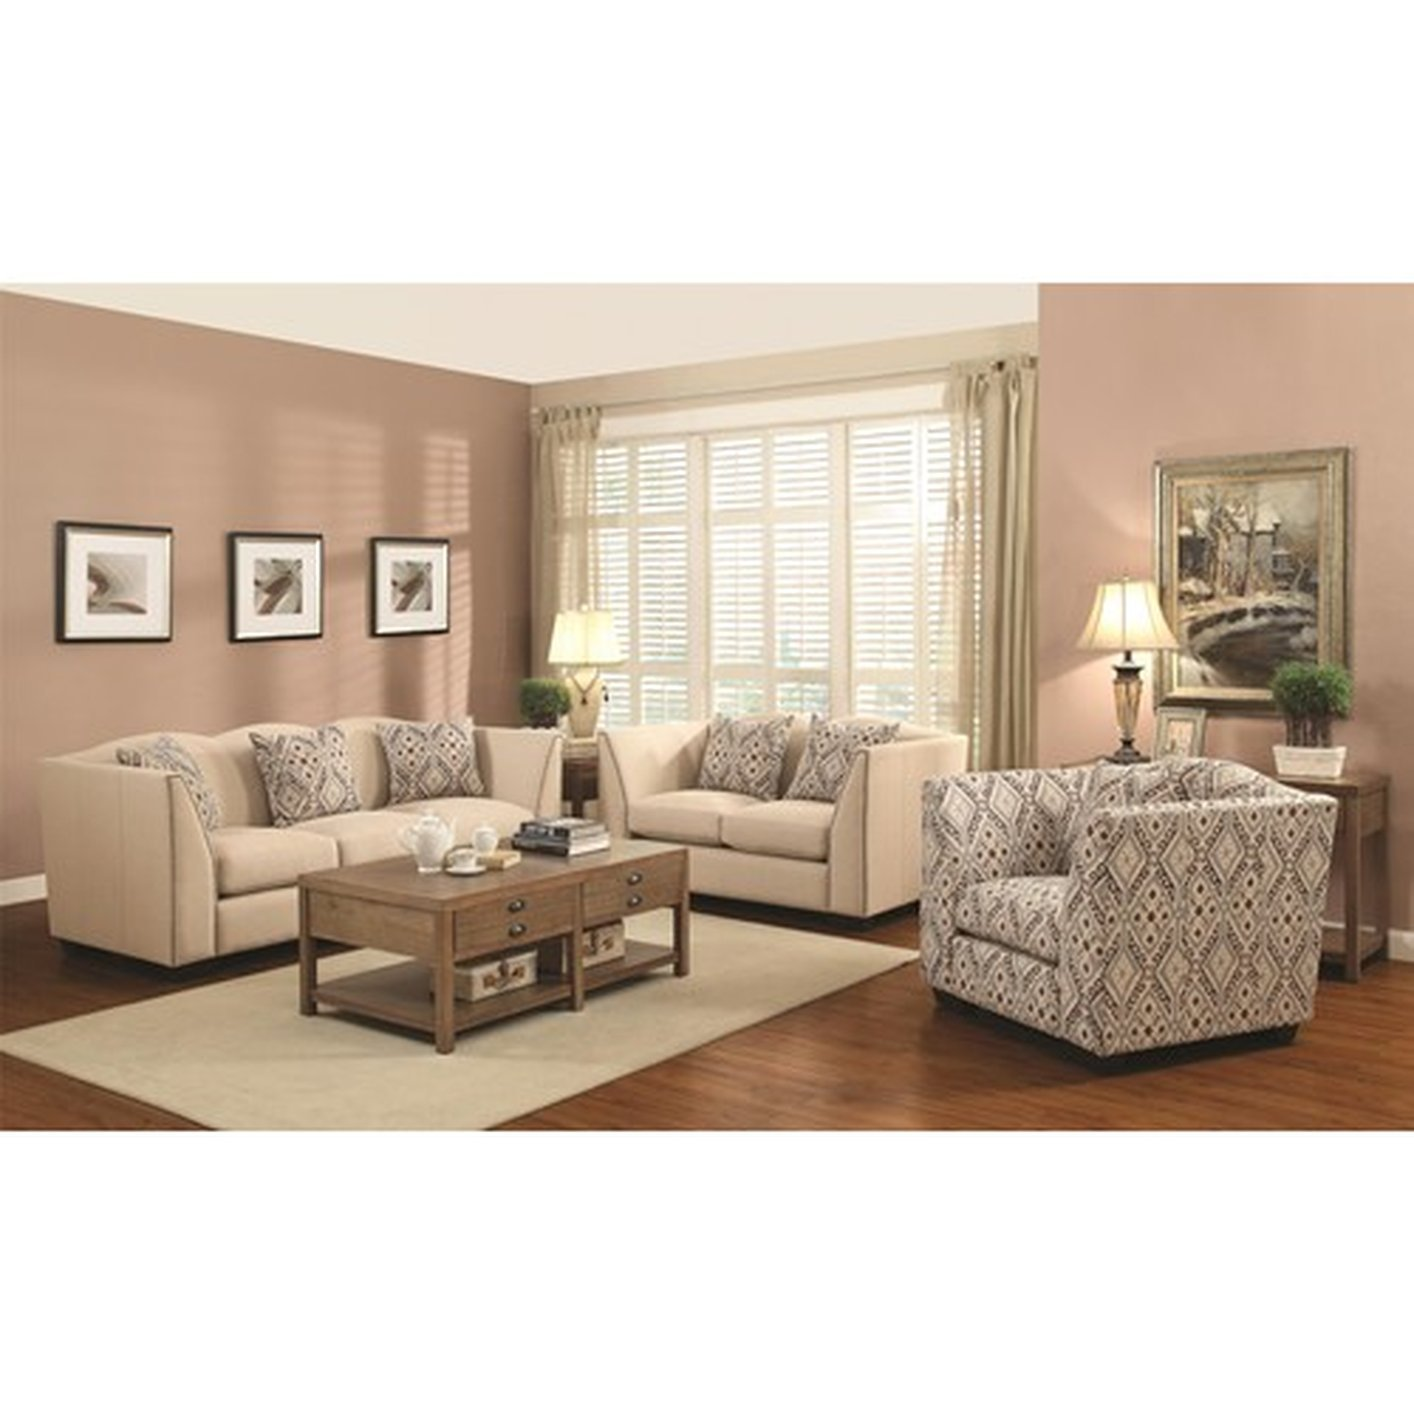 Sofa And Accent Chair Set Beige Fabric Modern Sofa Accent